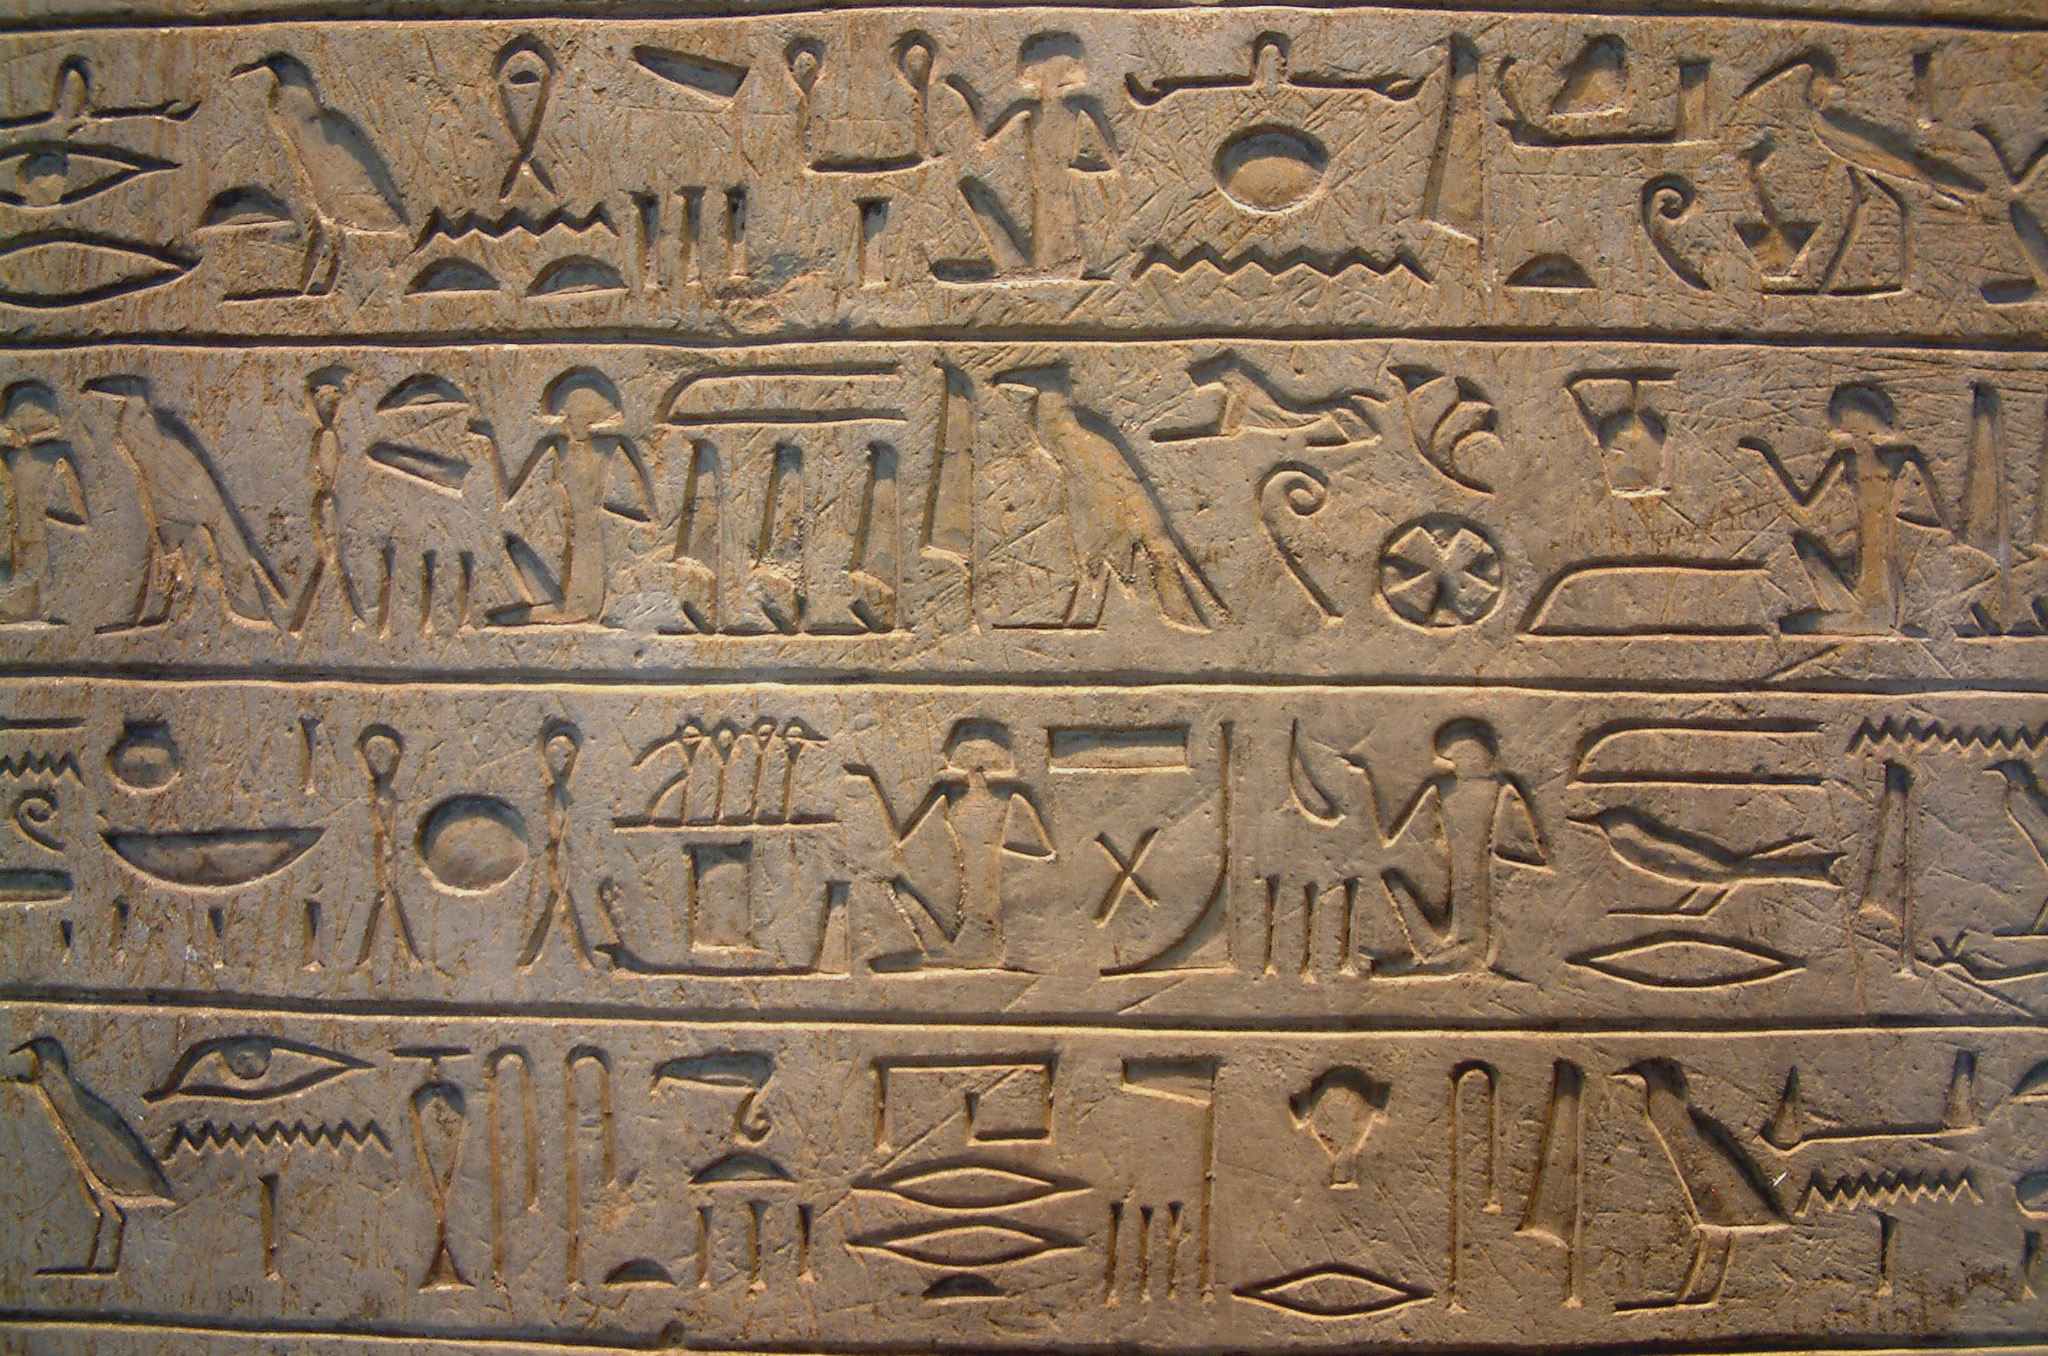 https://upload.wikimedia.org/wikipedia/commons/5/5c/Egypte_louvre_144_hieroglyphes.jpg